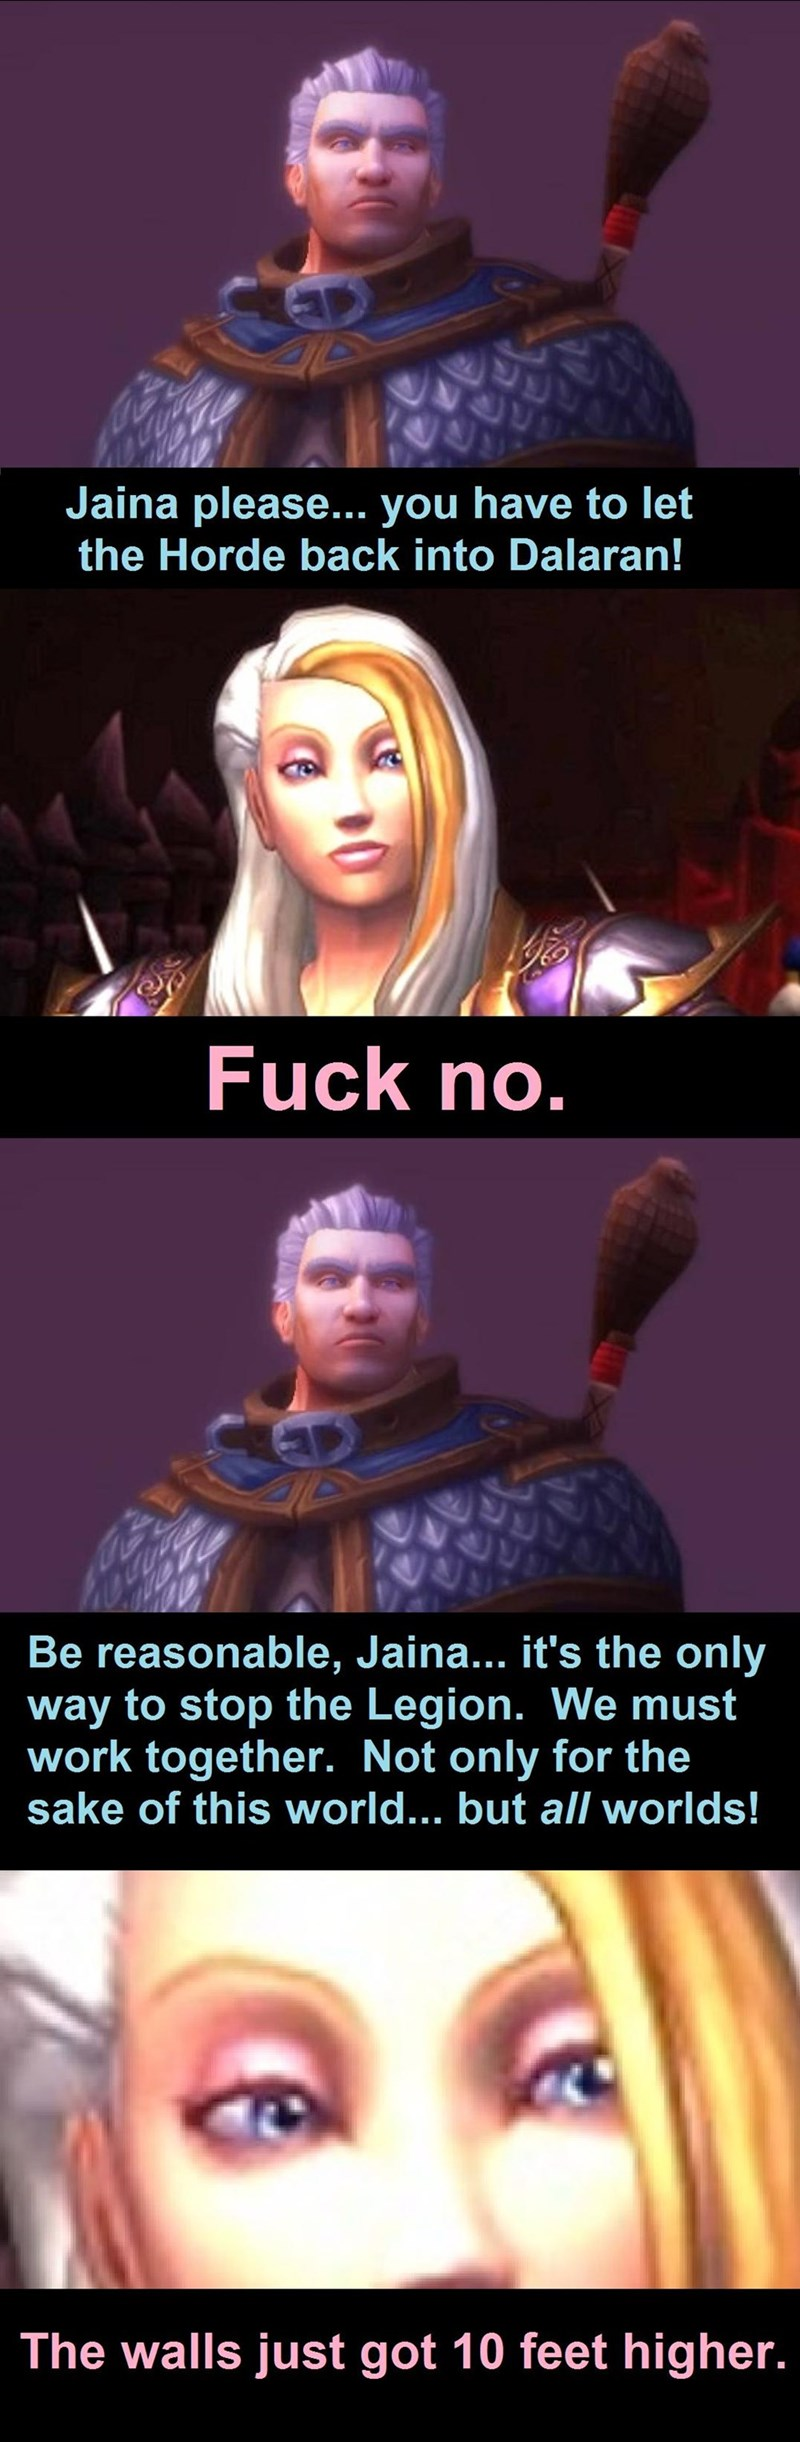 funny-world-of-warcraft-logic-jaina-make-dalara-great-again